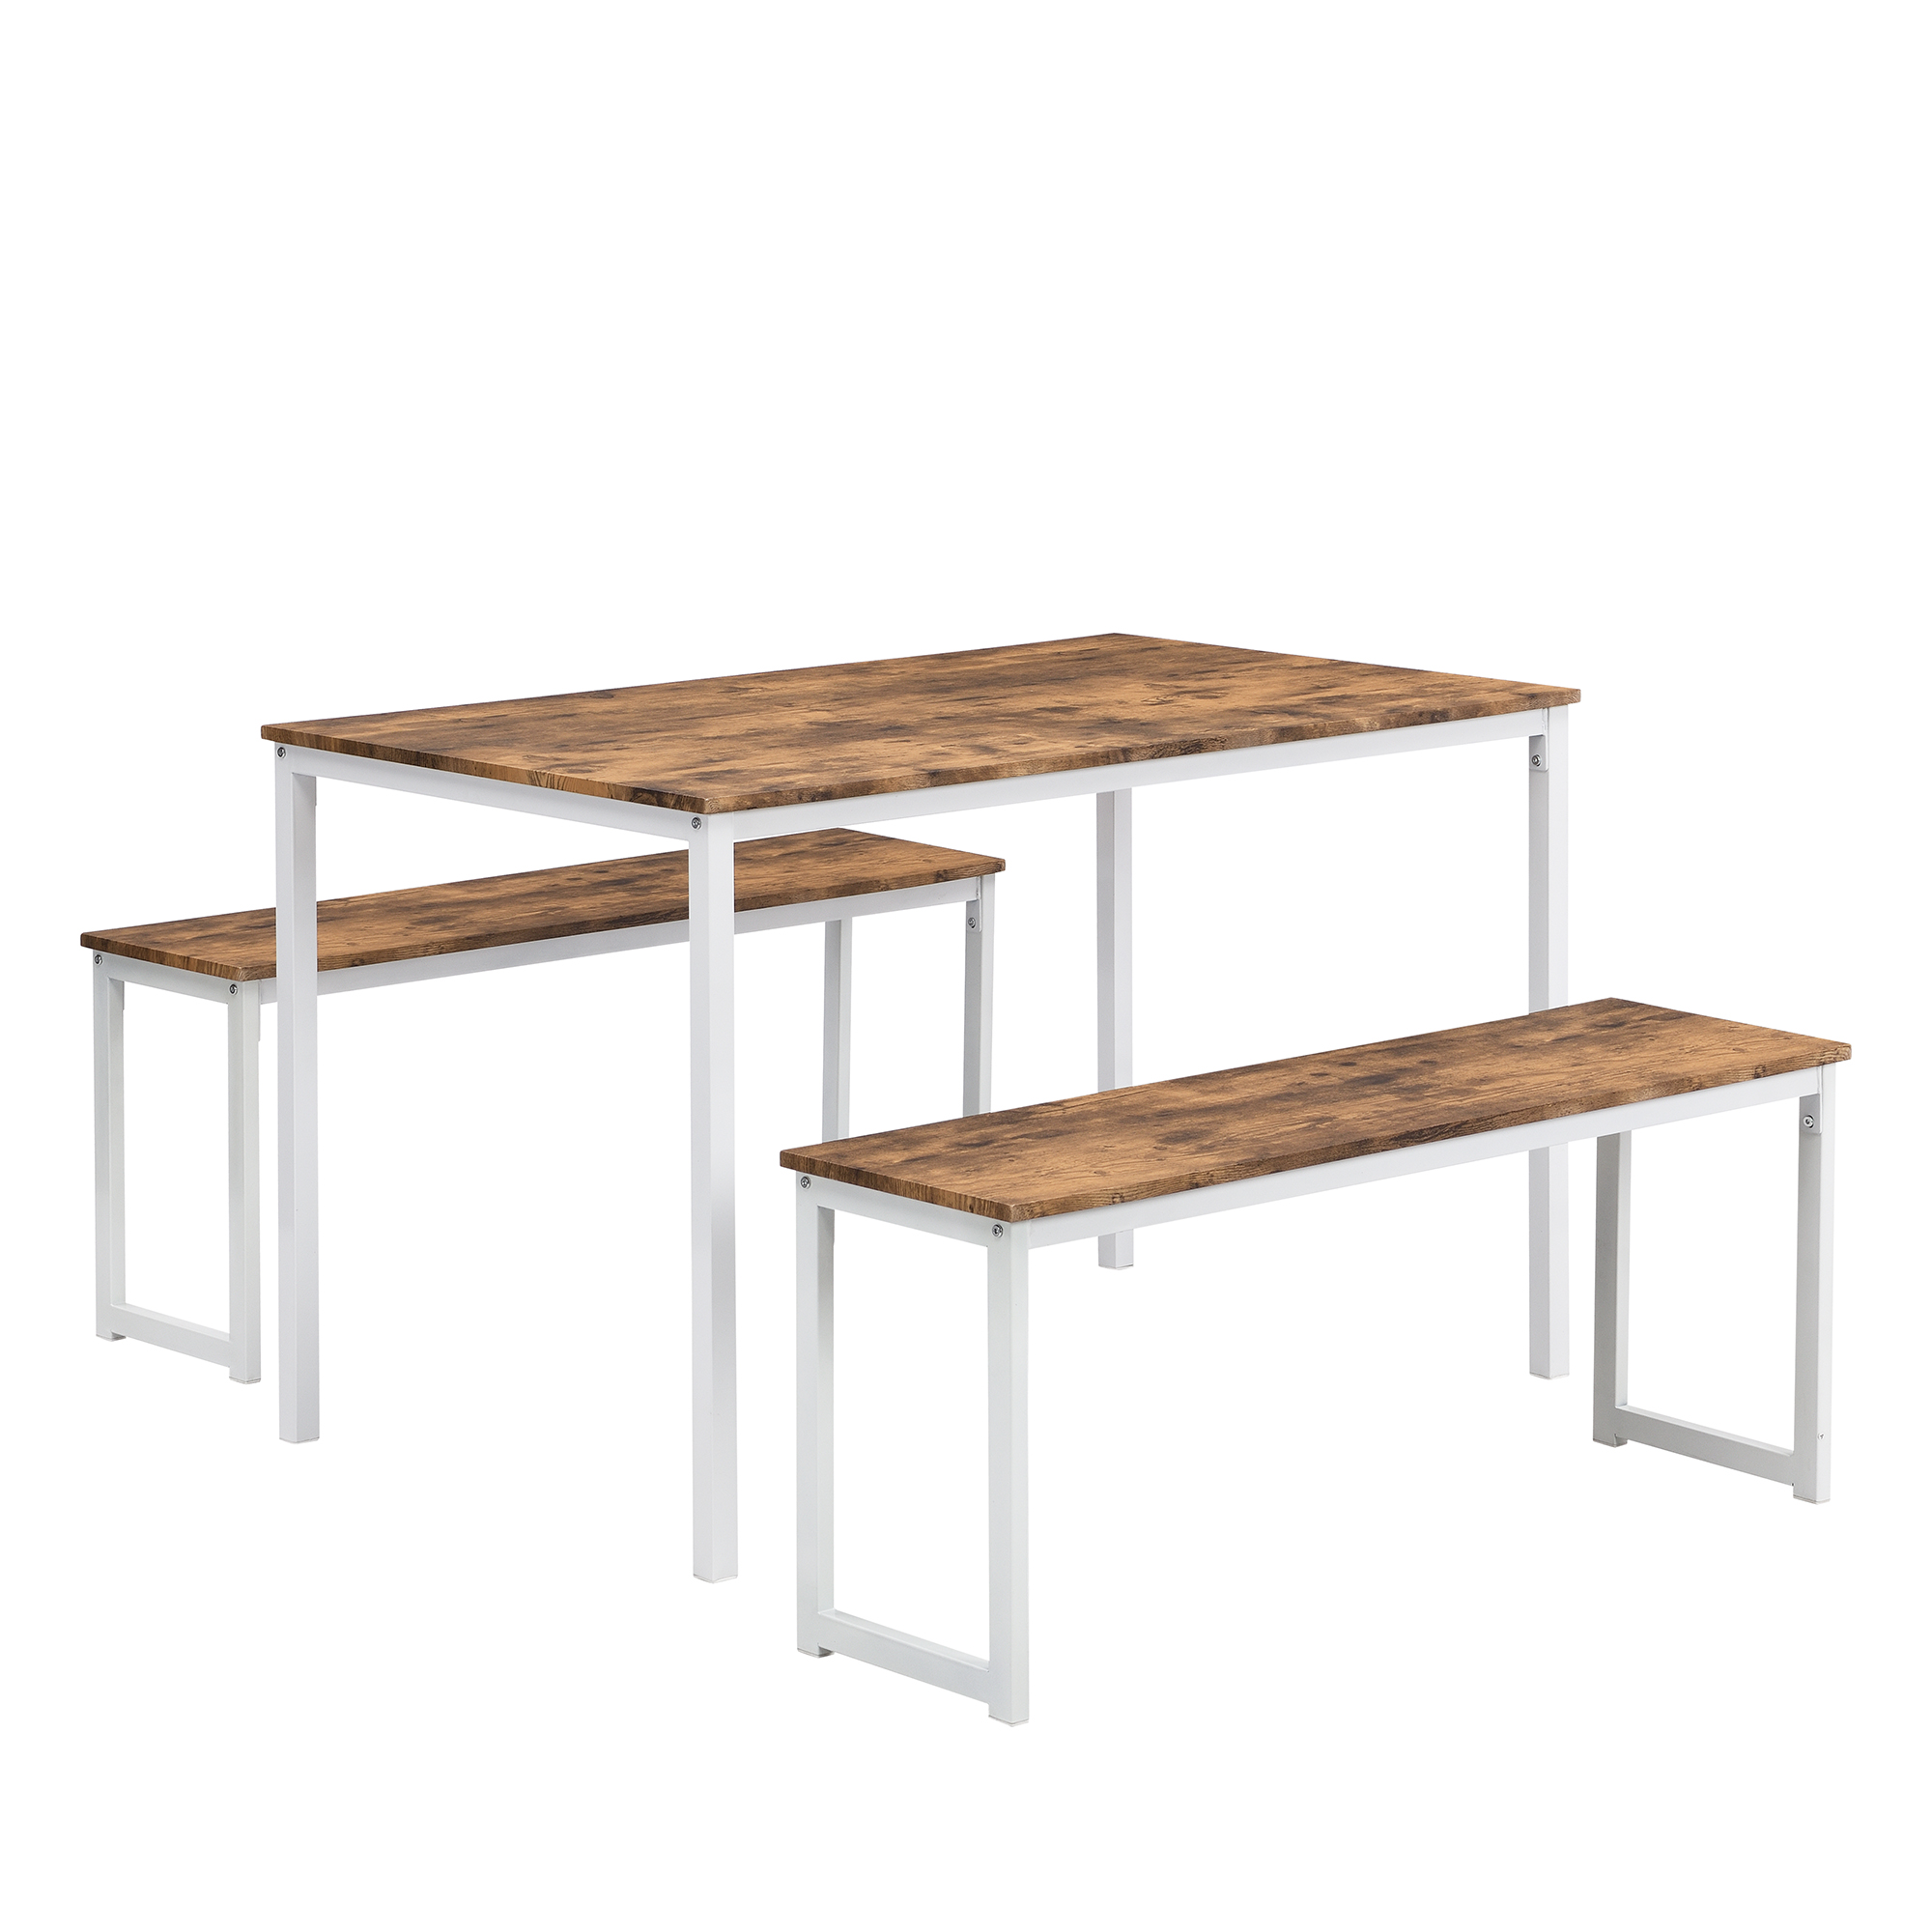 3 Piece Dining Set, Kitchen Table With Benches